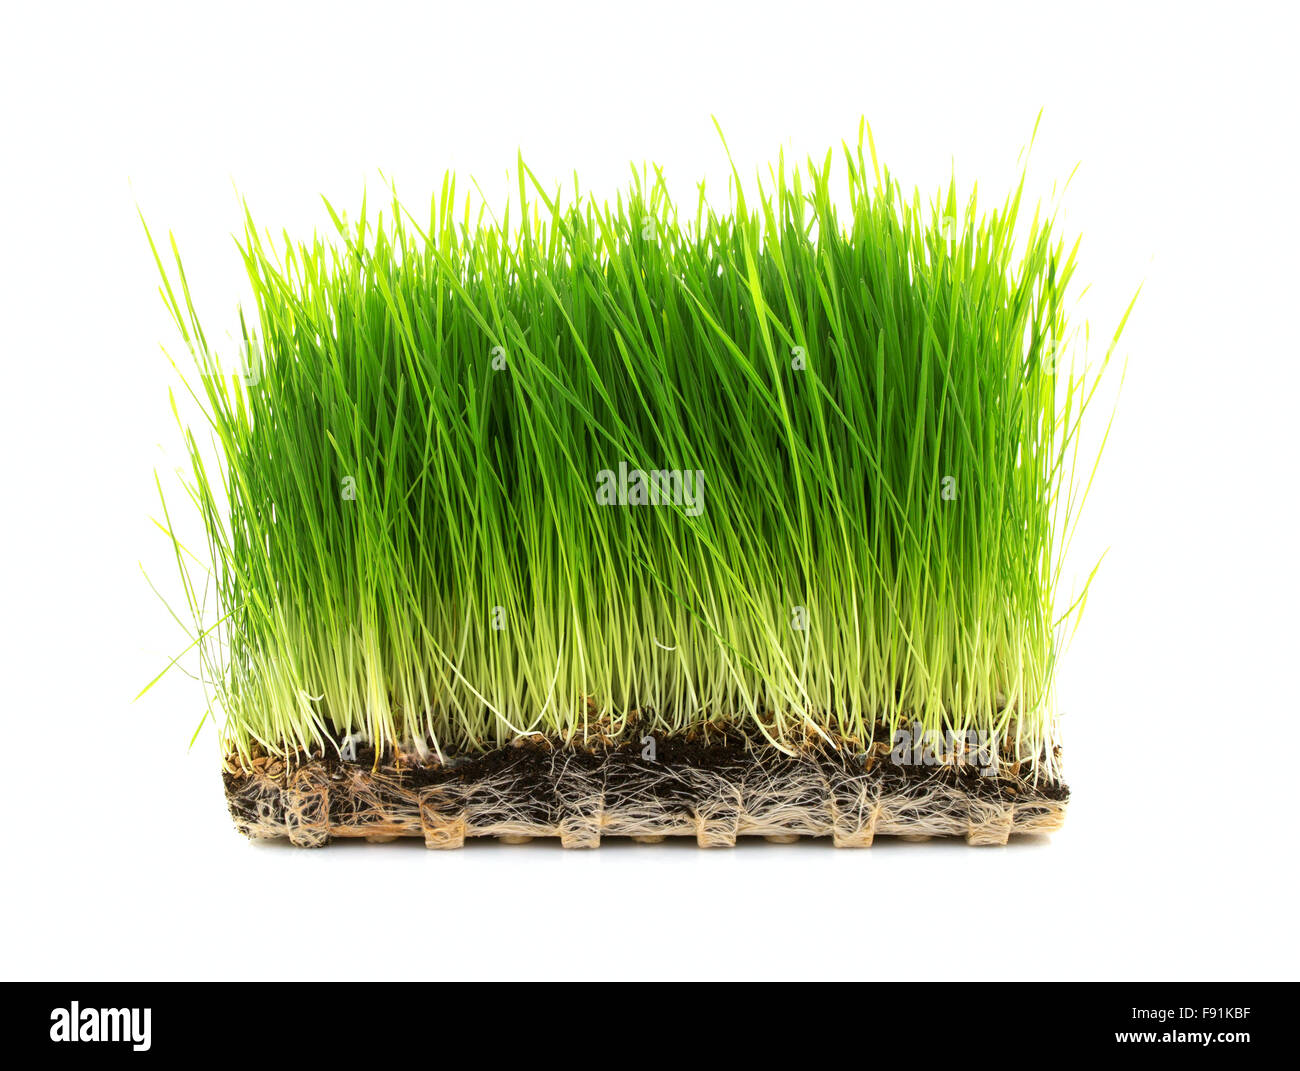 Nutritious Tray Of Homegrown Wheatgrass on a White Background - Stock Image